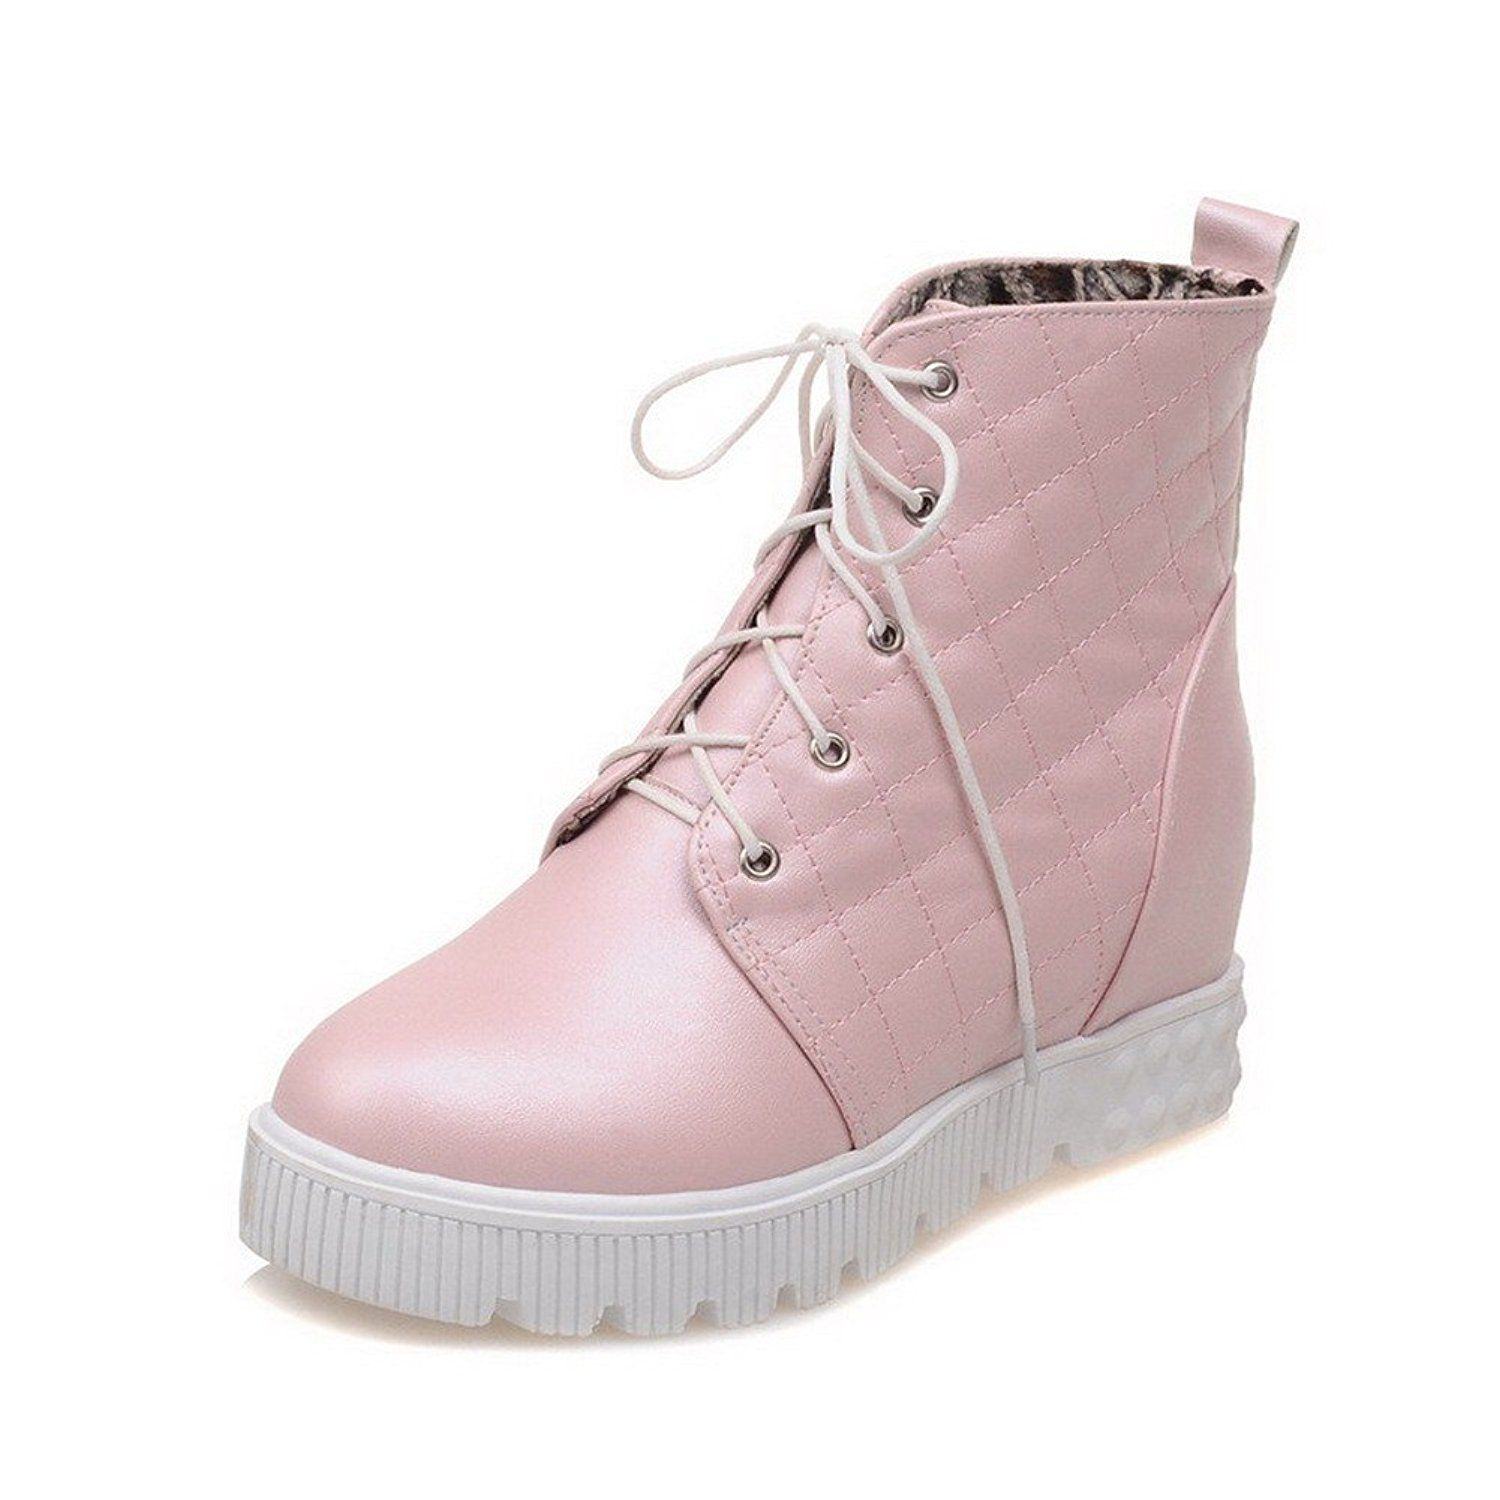 Women's Low-Top Lace-Up Soft Material Kitten-Heels Round Closed Toe Boots With Knot